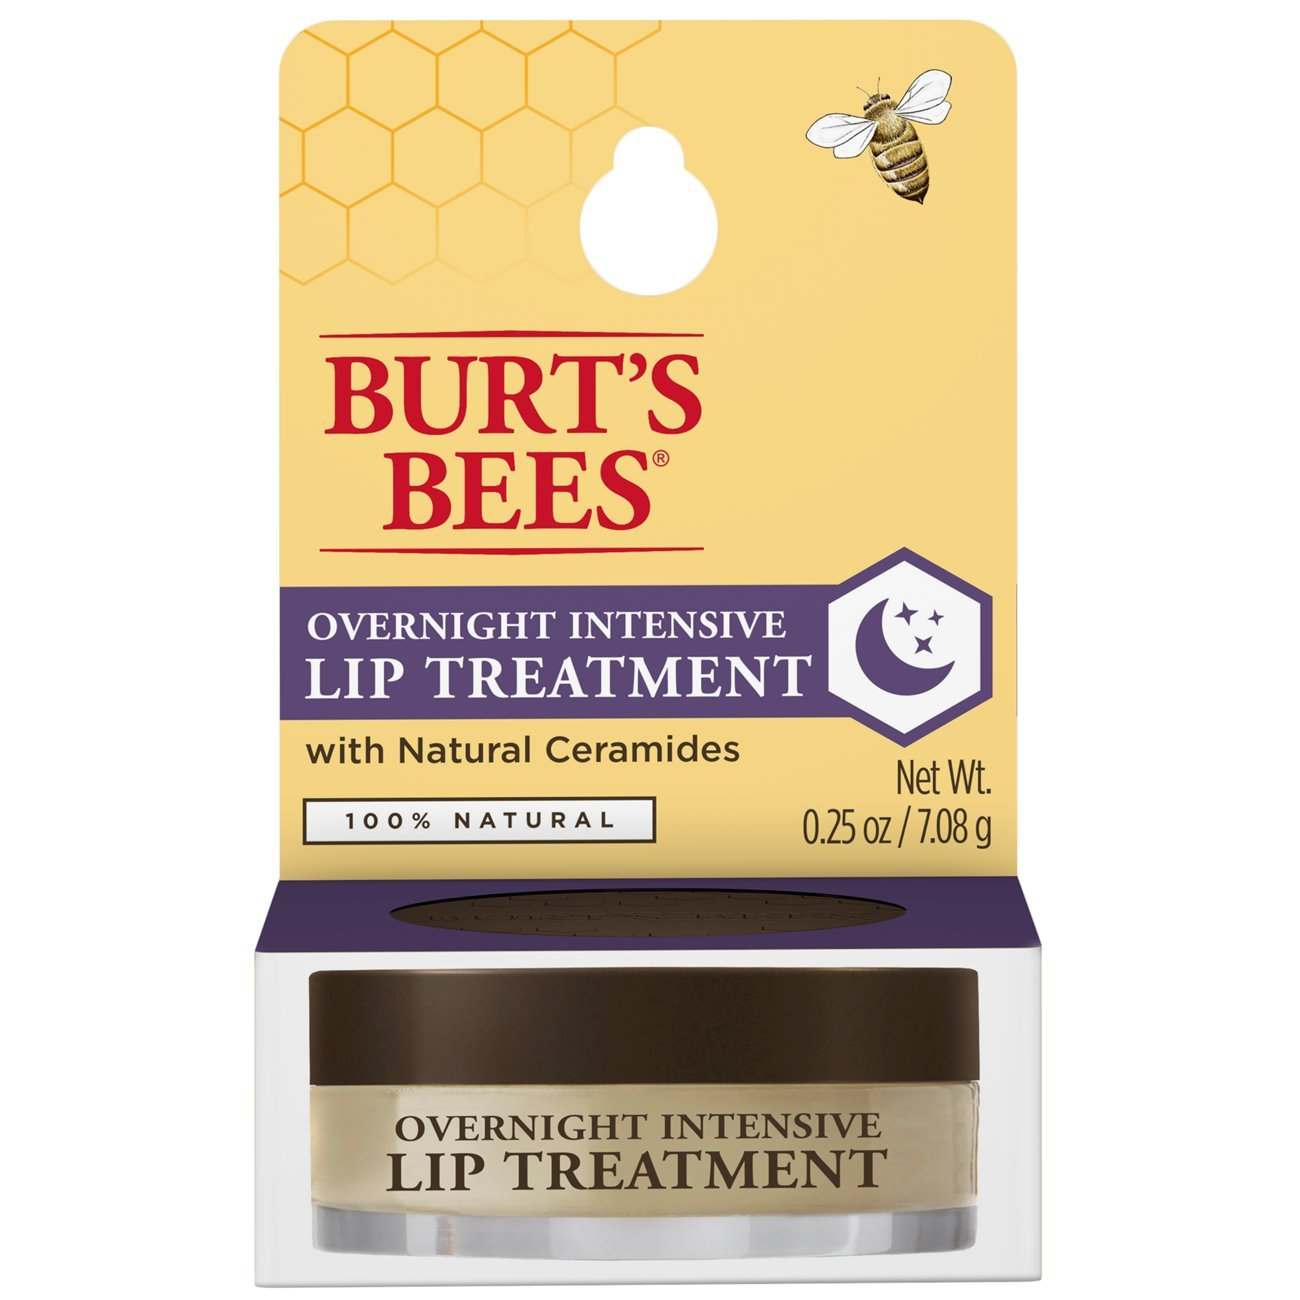 Burt's Bees 100% Natural Overnight Intensive Lip Treatment, Ultra-Conditioning Lip Care - 0.25 ounce by Burt's Bees